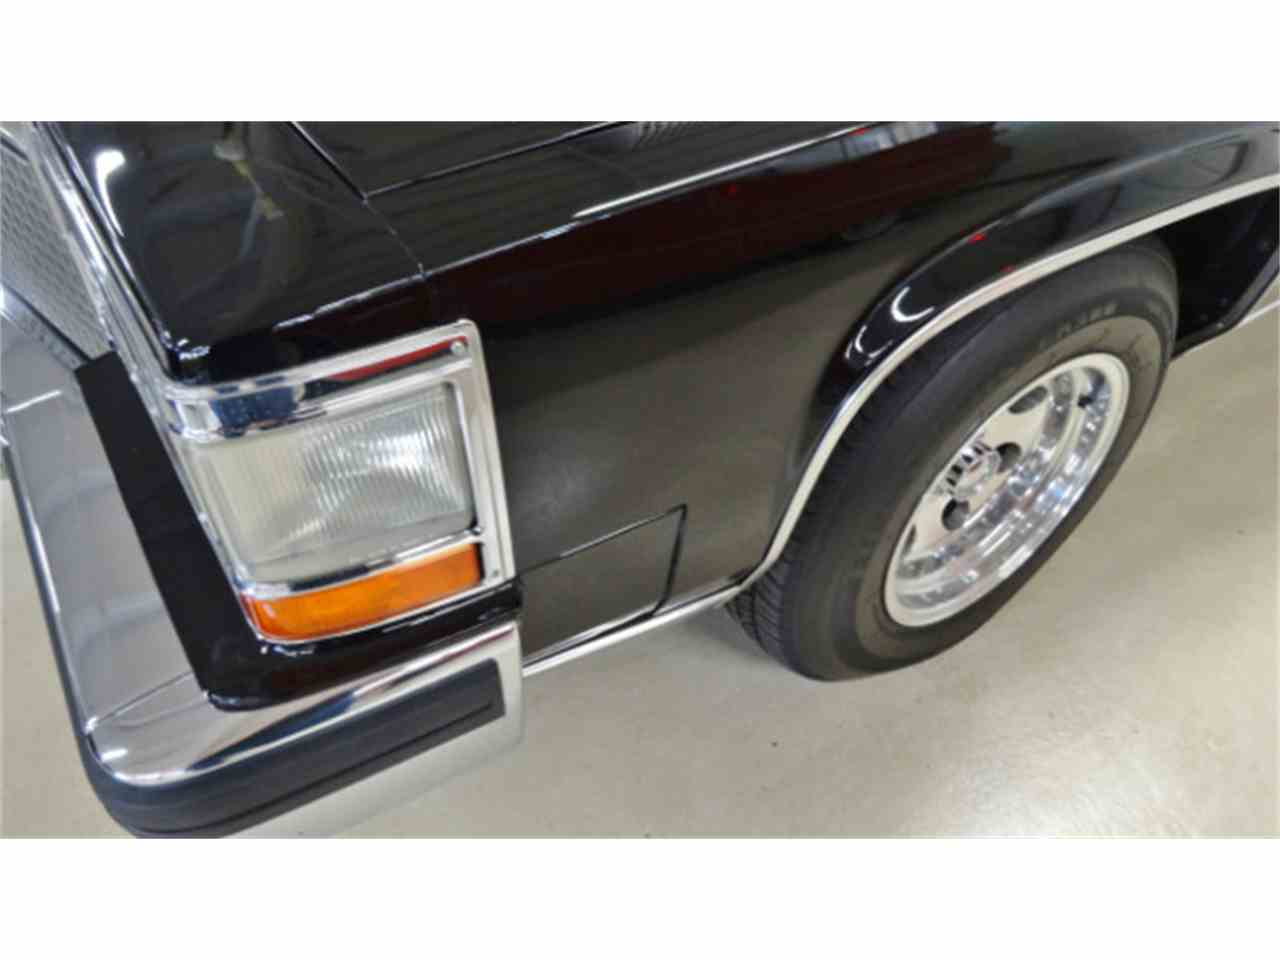 Large Picture of '81 Fleetwood Brougham - $11,995.00 - JQKH